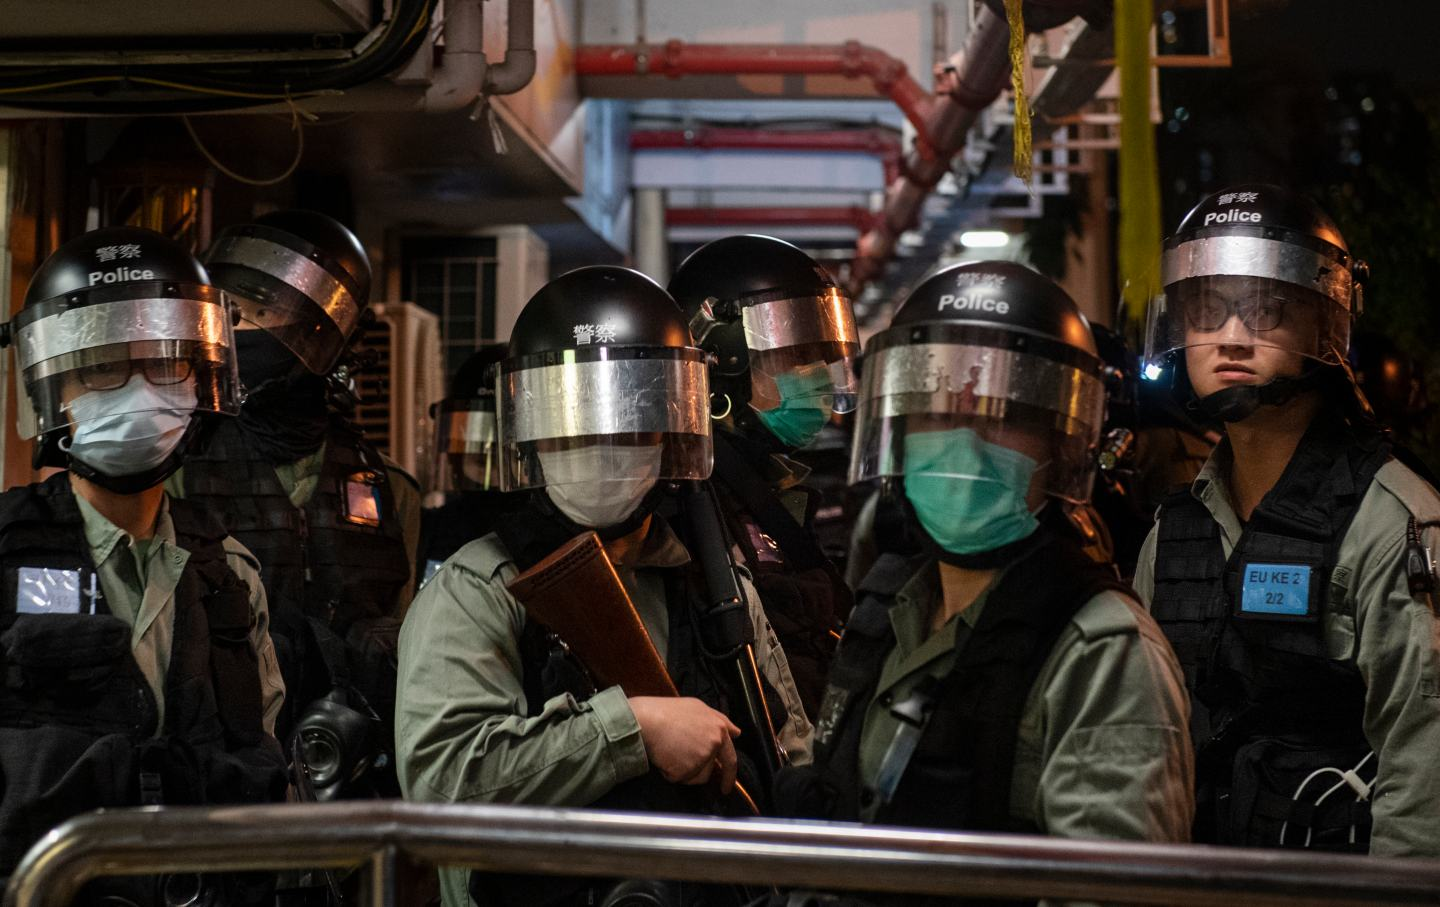 Police officers gathered in Hong Kong during coronavirus pandemic